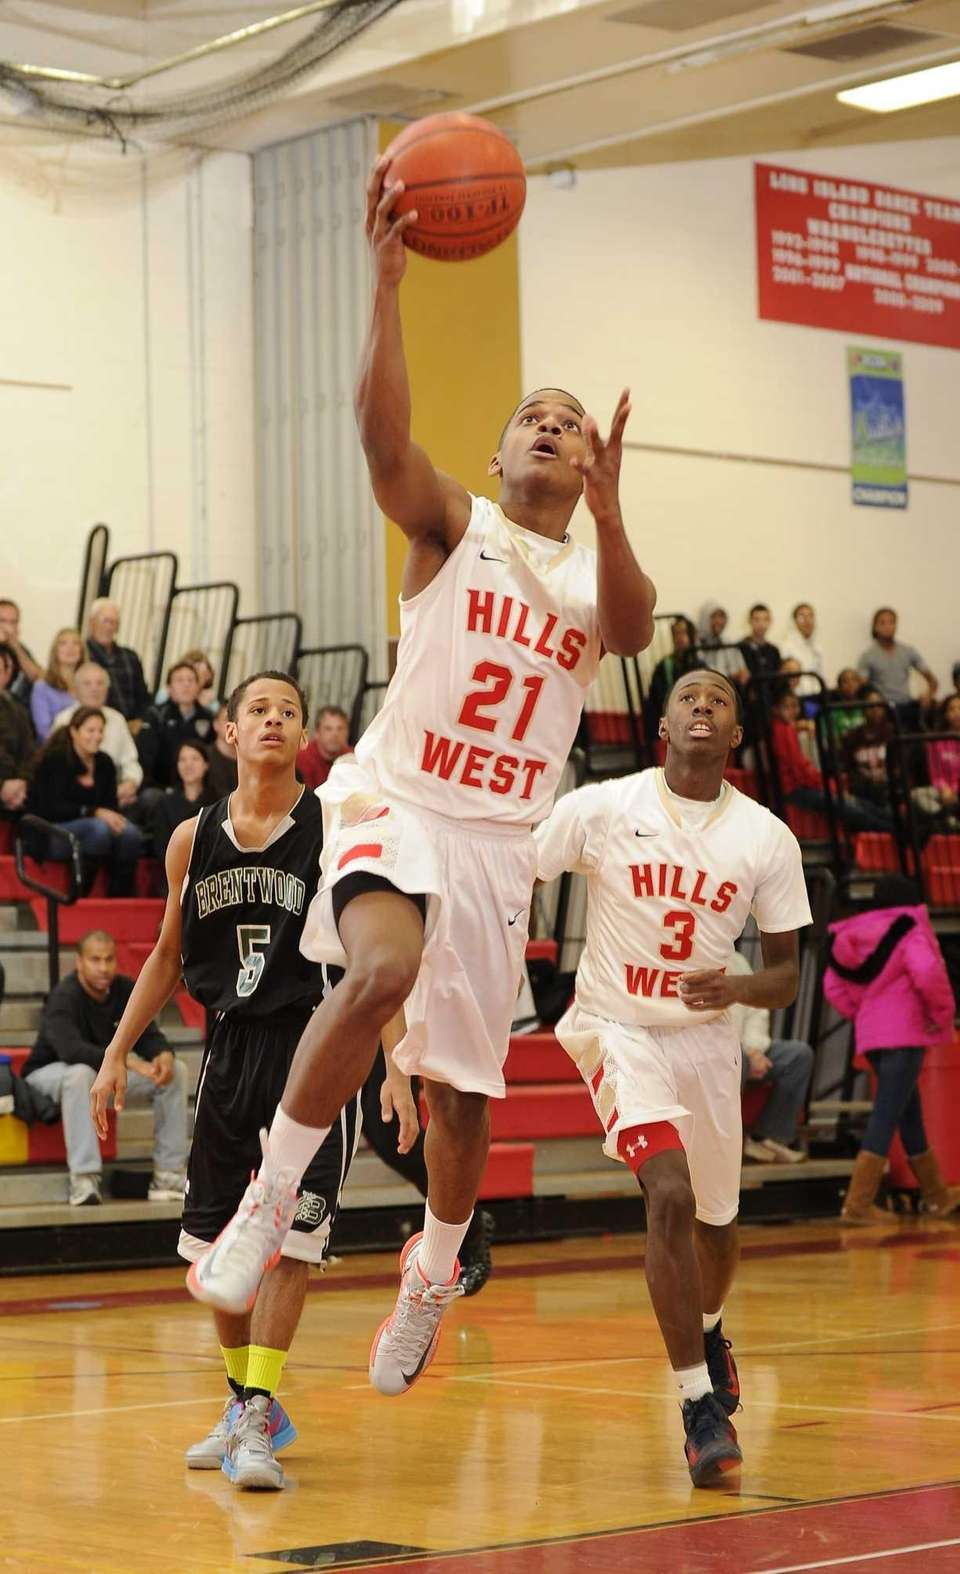 Half Hollow Hills West guard Jamir Blackman shoots